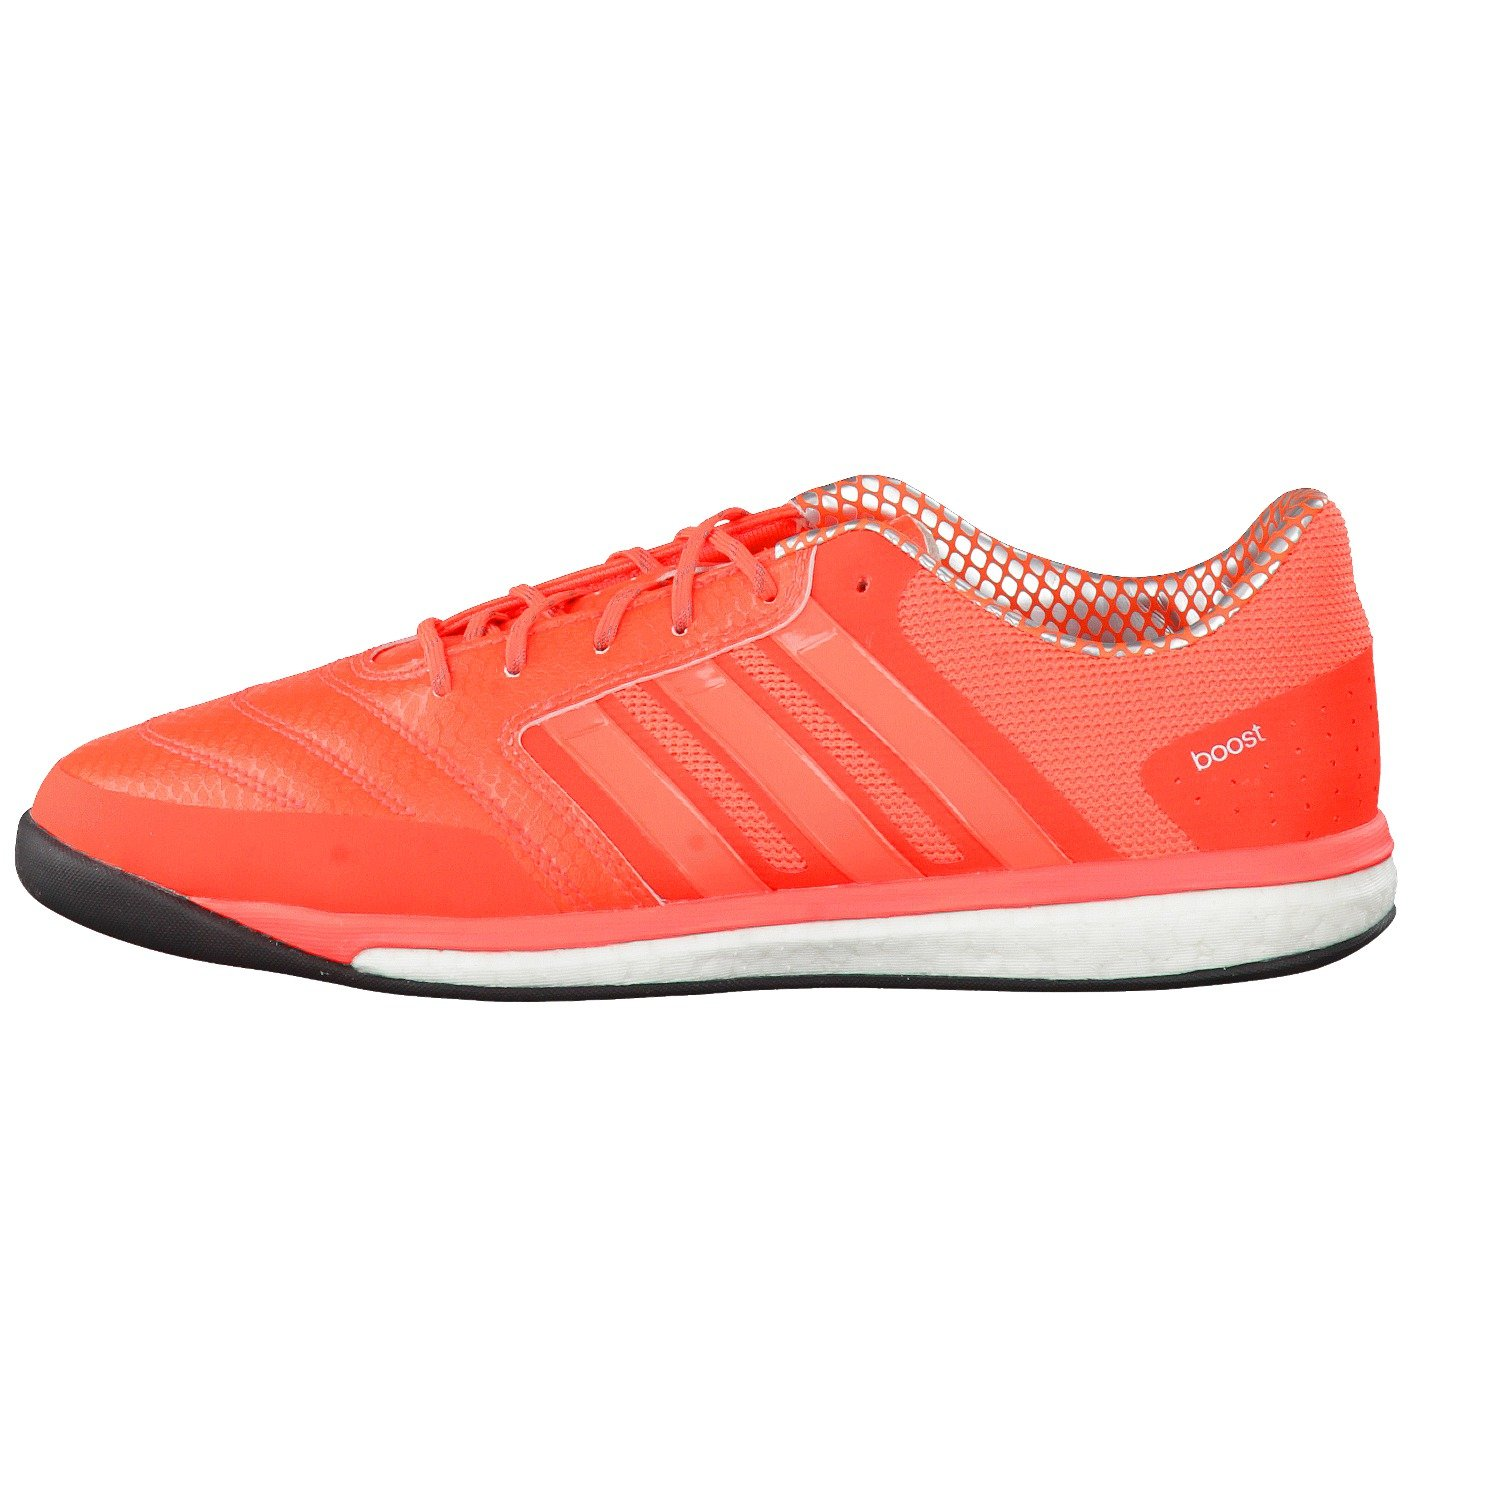 Red Futsal M Boost Homme Ff Chaussures Adidas 34jLq5RAc